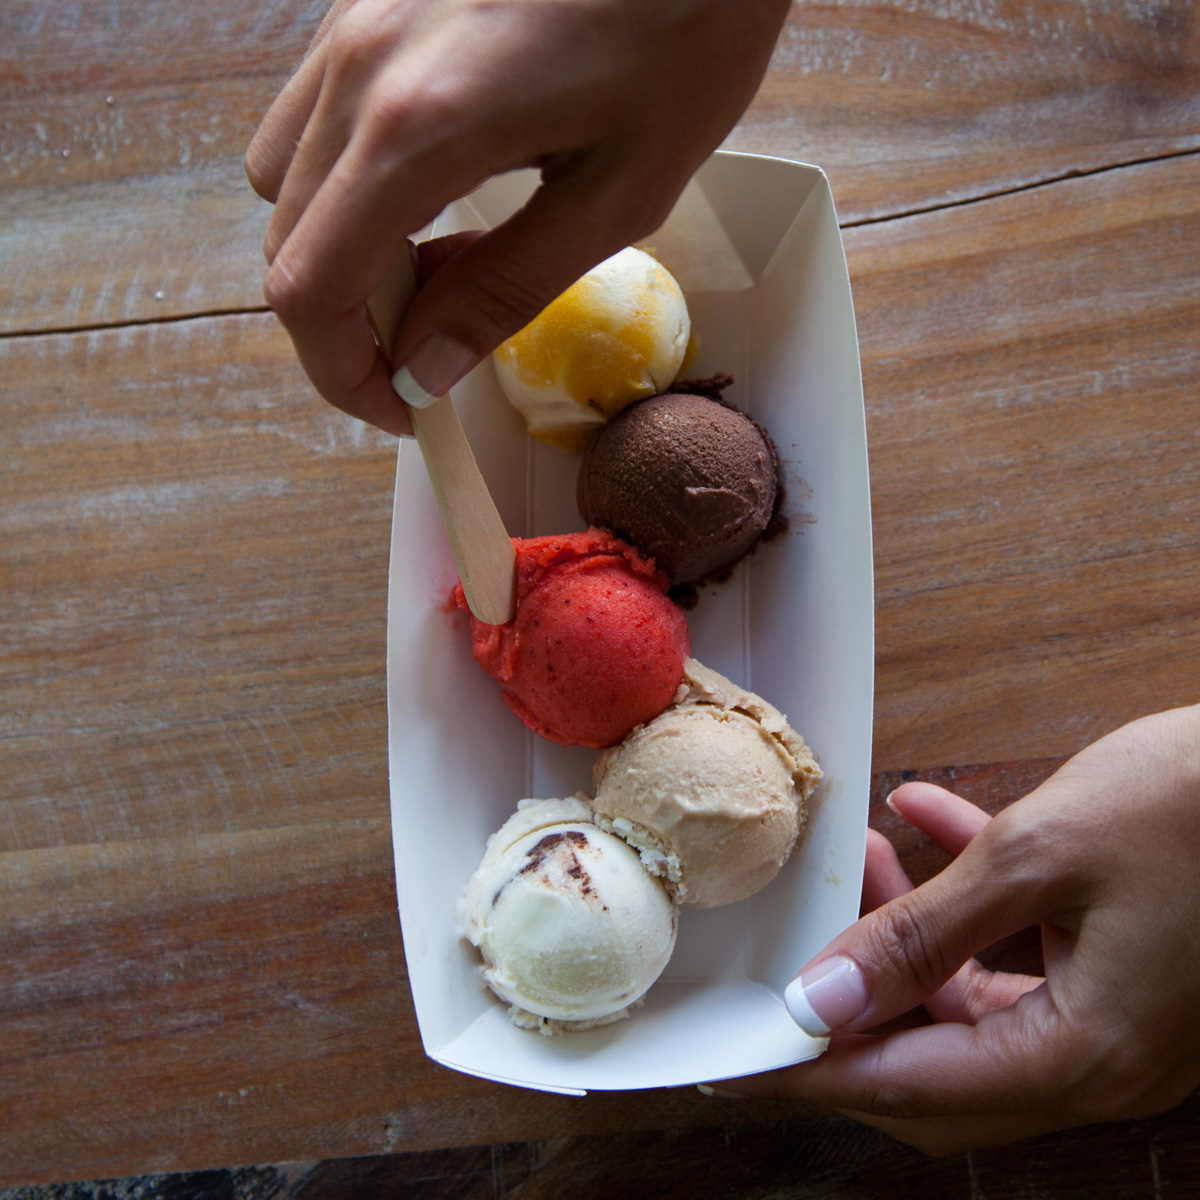 Best Ice Cream Spots in the U.S.: Minneapolis's Pumphouse Creamery